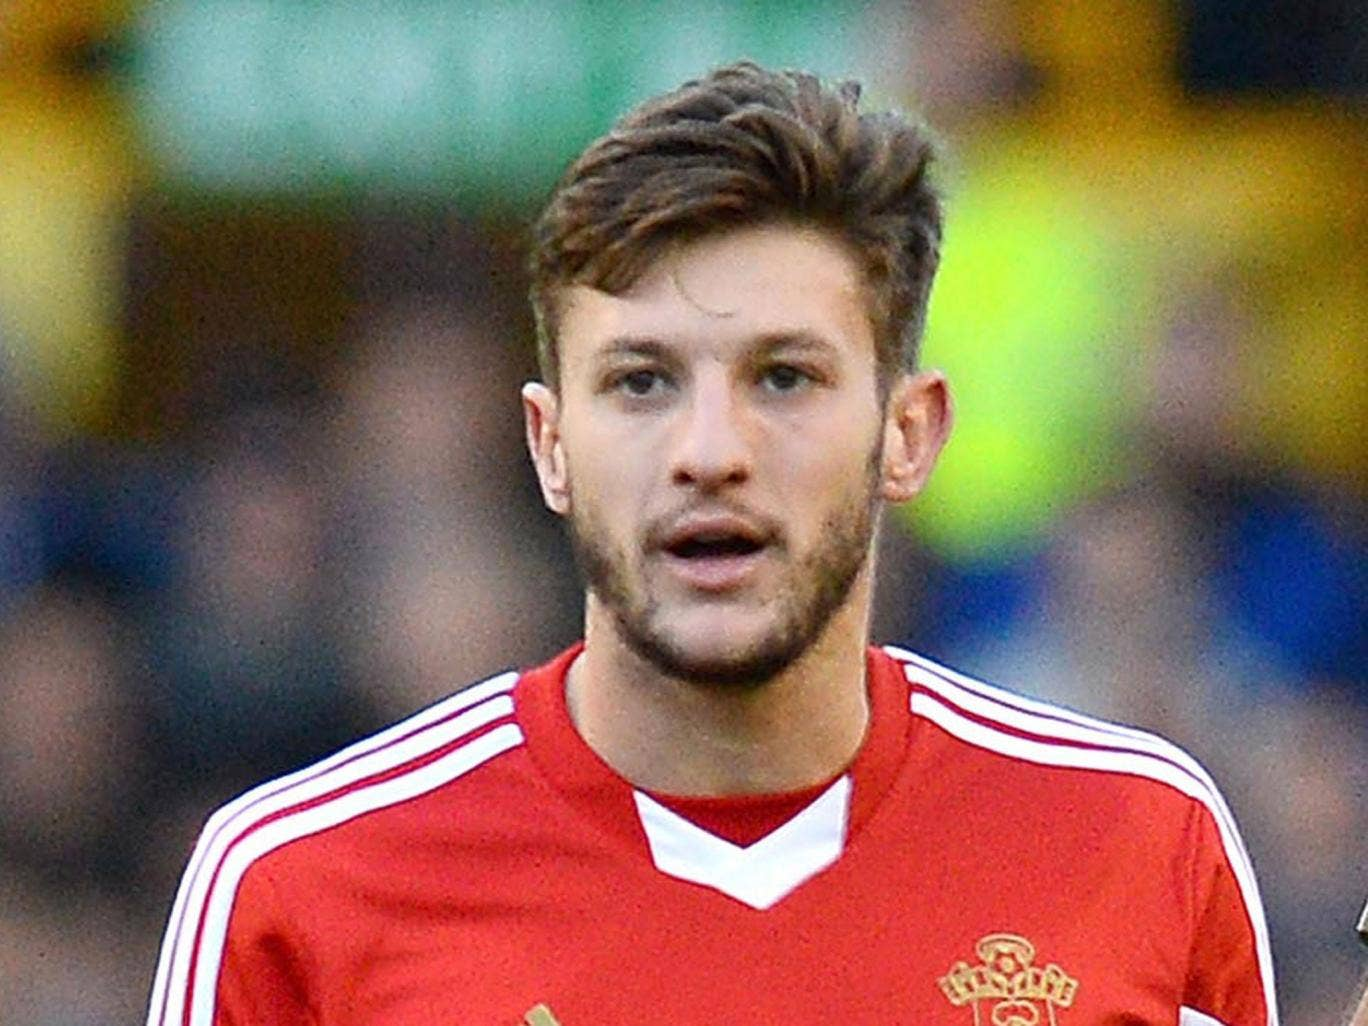 Adam Lallana was upset by the ridicule he received after the complaint about Mark Clattenburg